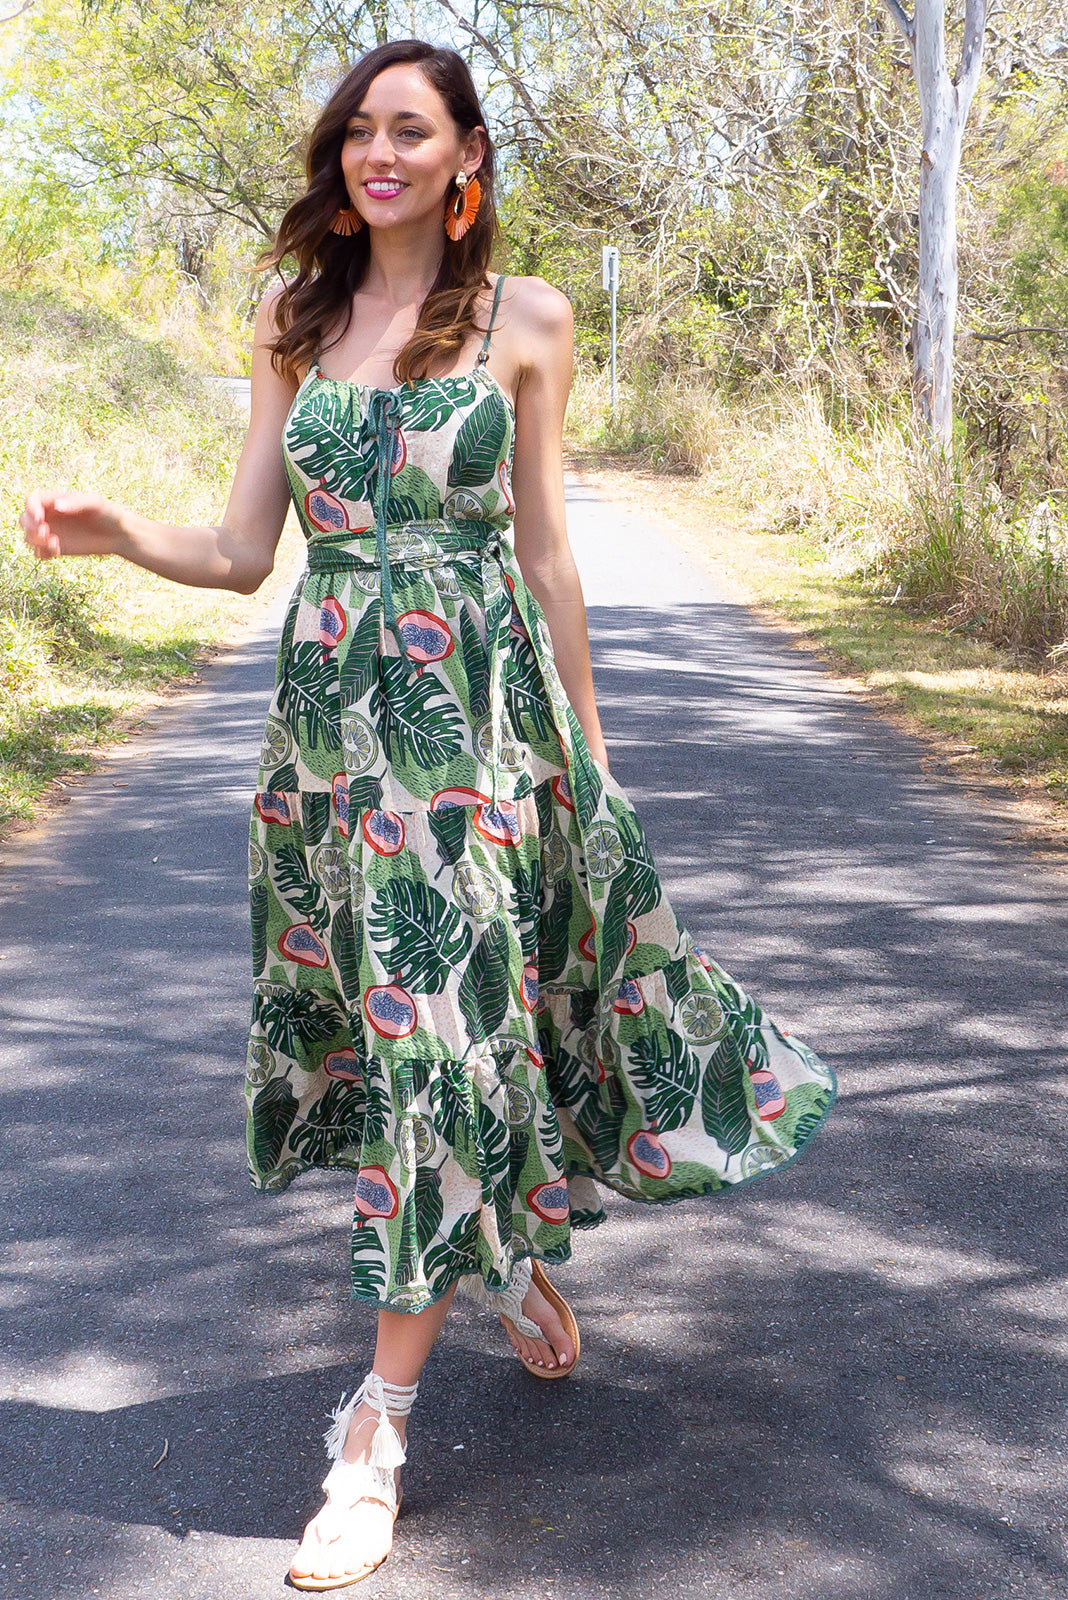 Lulu Loves Tropical Fruit Maxi length cotton rayon blend tiered dress with a adjustable neckline, side pockets in a fun tropical fruit print